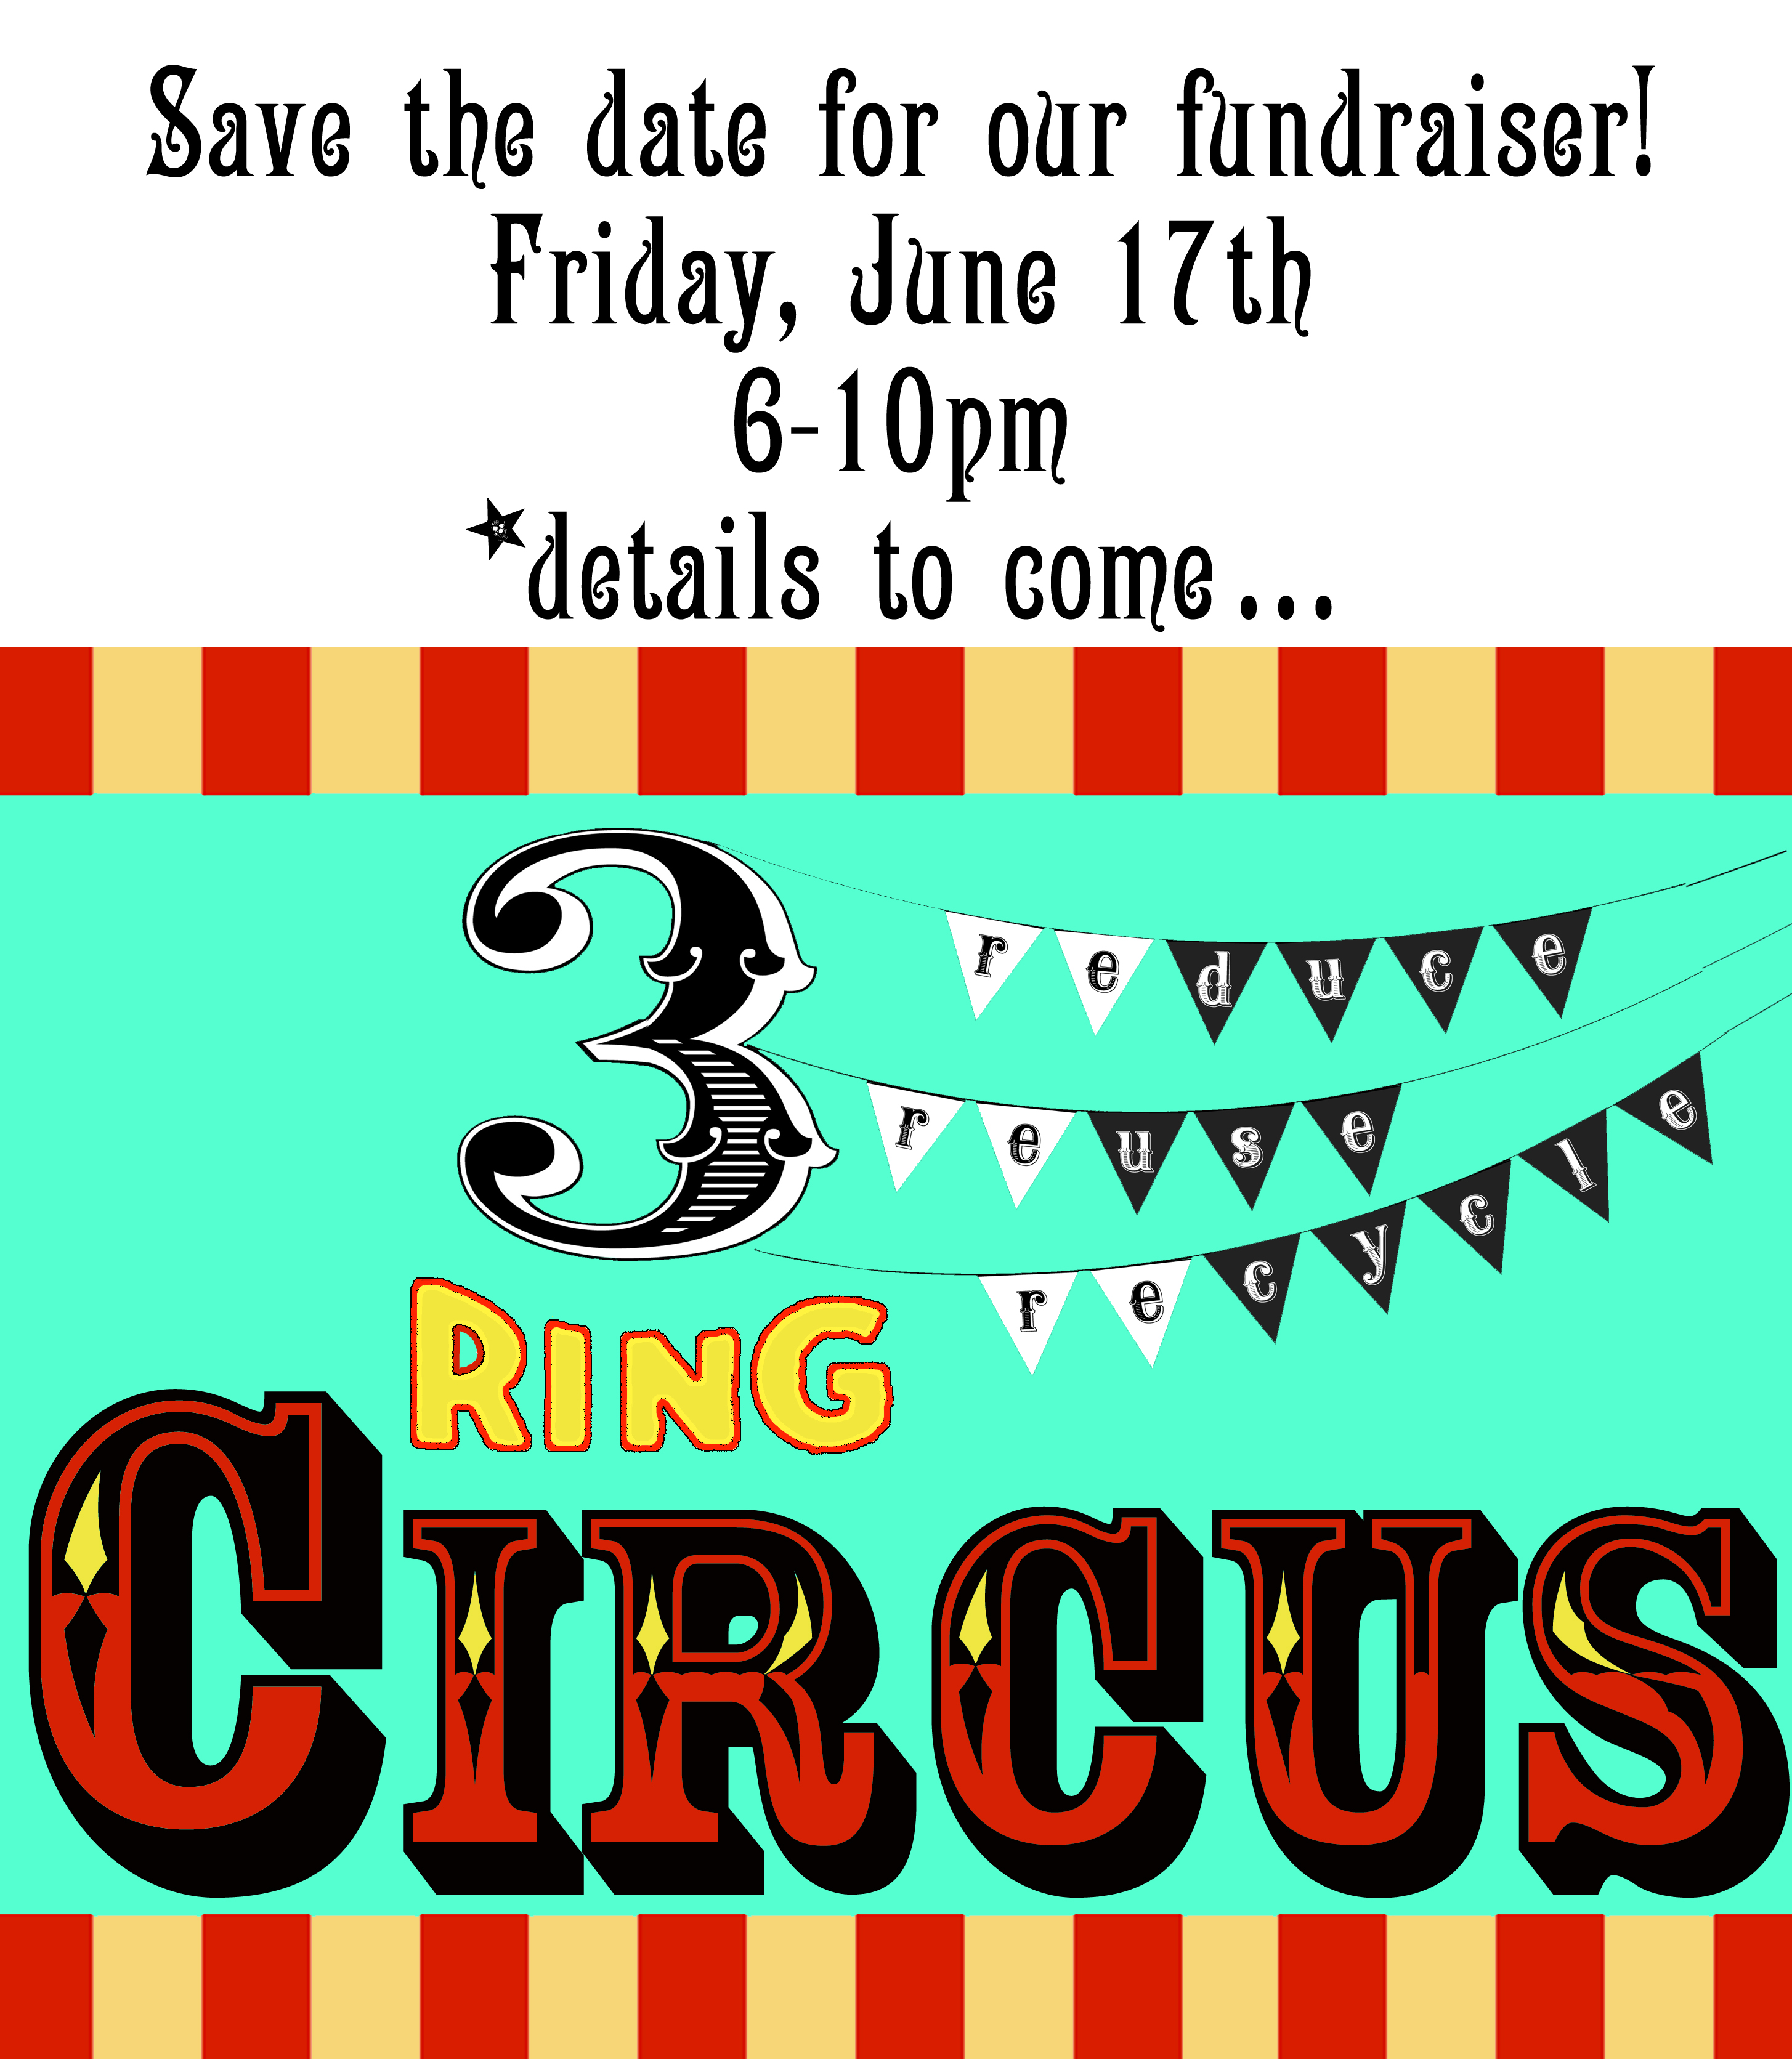 Save the date for our 3 Ring Circus Fundraiser! Friday, June 17th, 6-10pm, details to come!